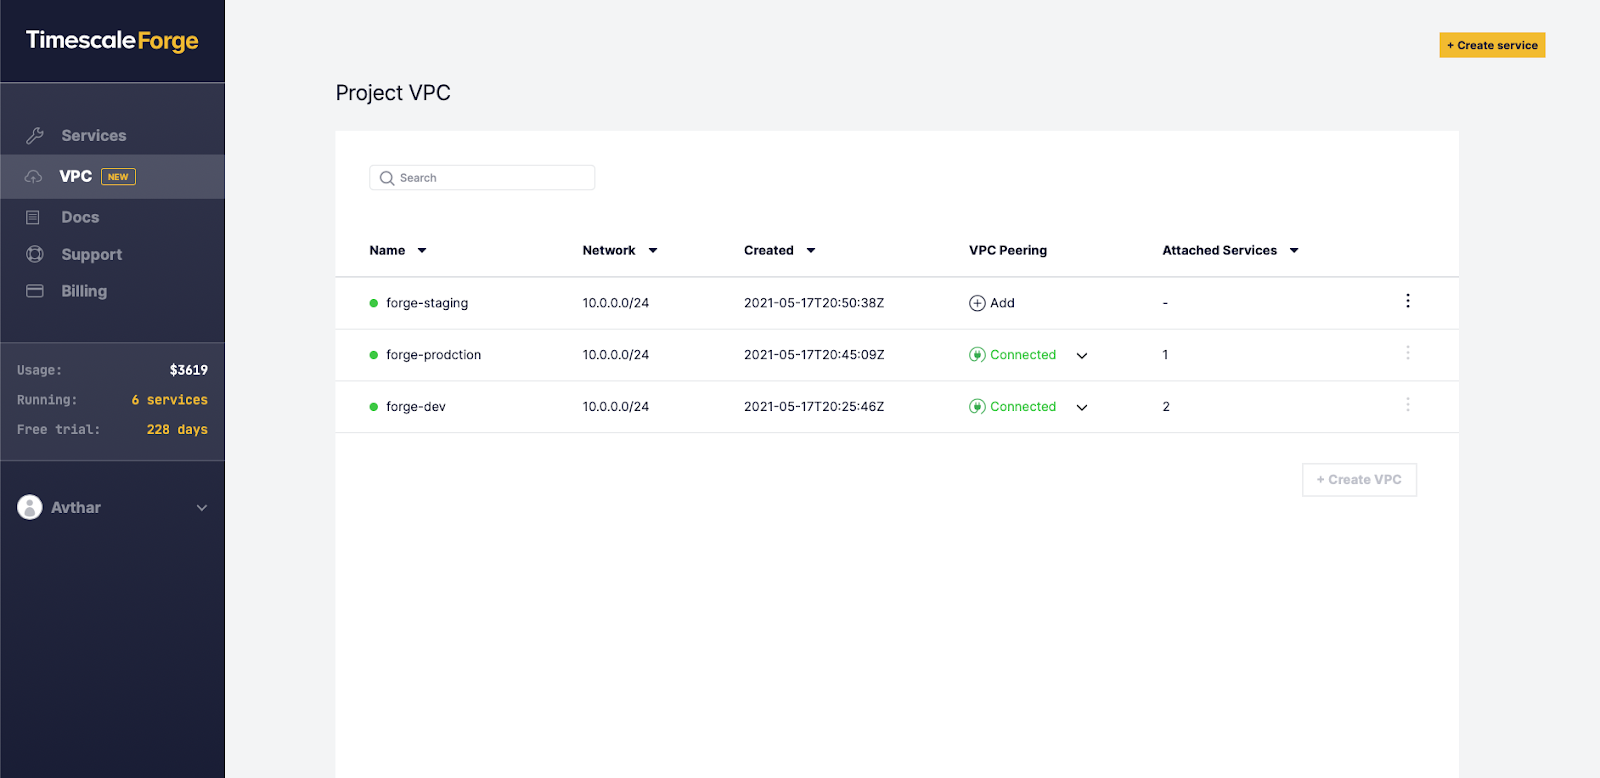 VPC tab in Timescale Forge showing list of VPC projects.